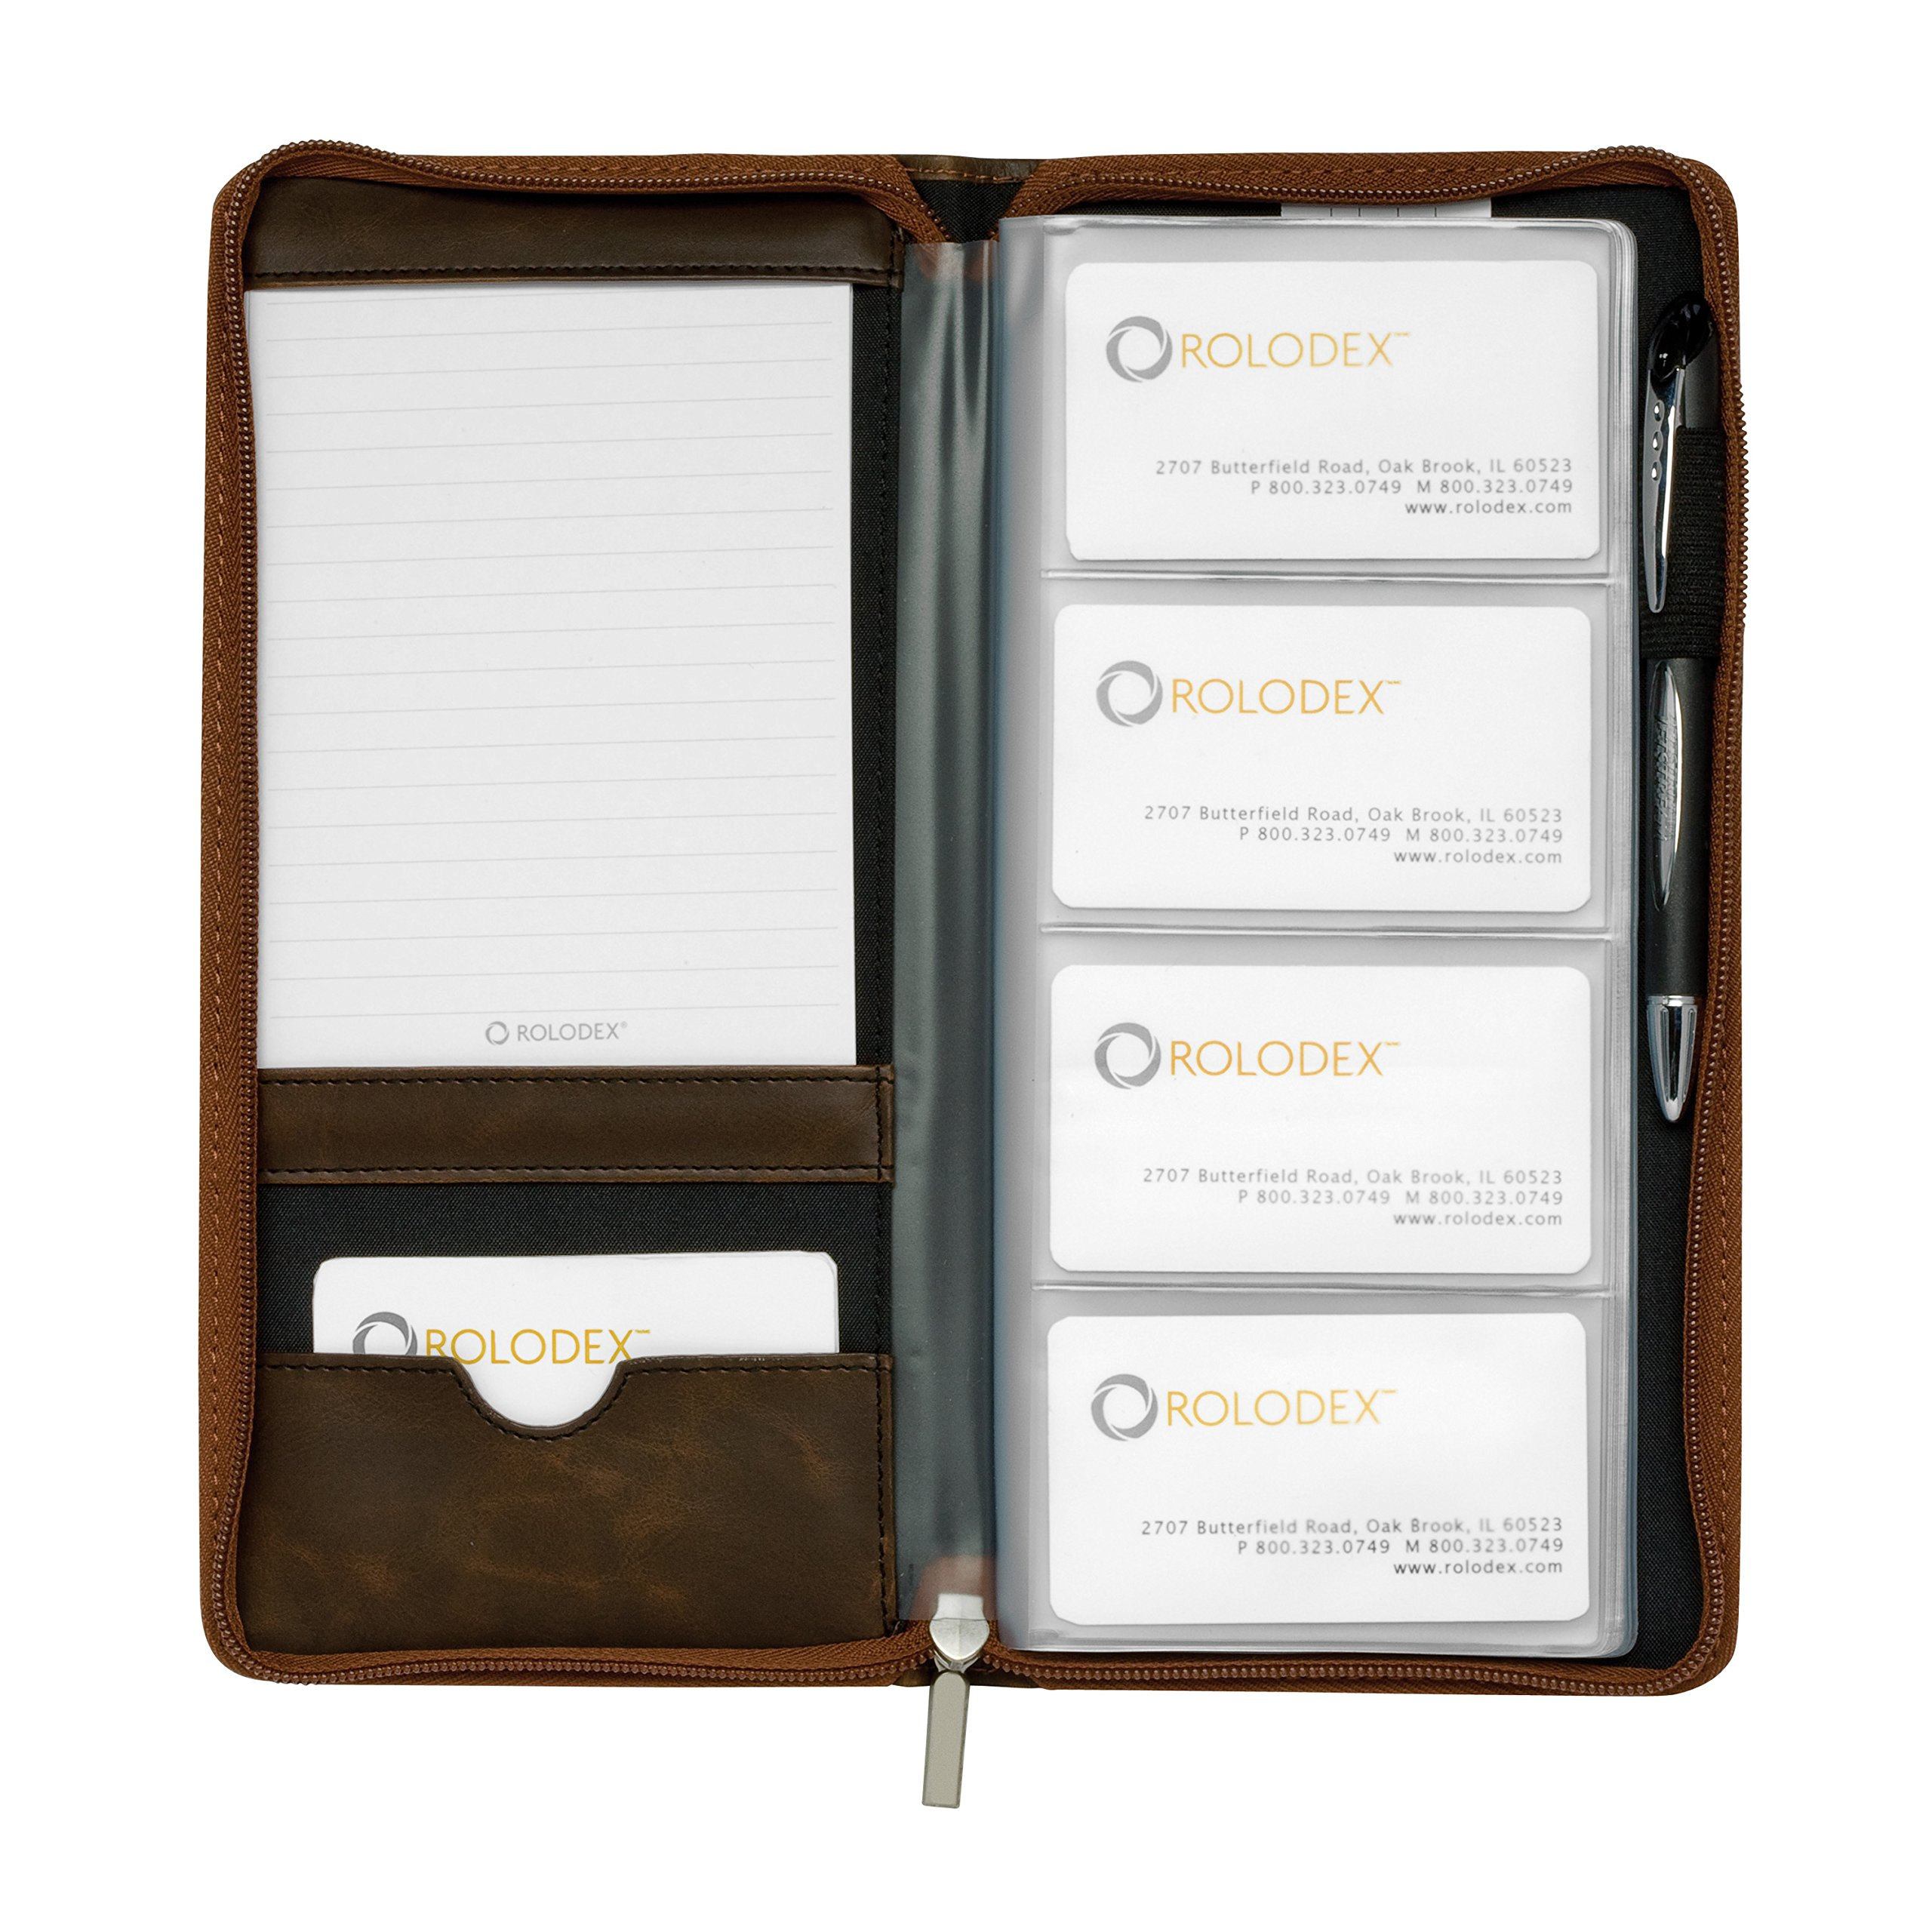 Rolodex Explorer Collection Business Card Book, 96-Card, Brown (22336)